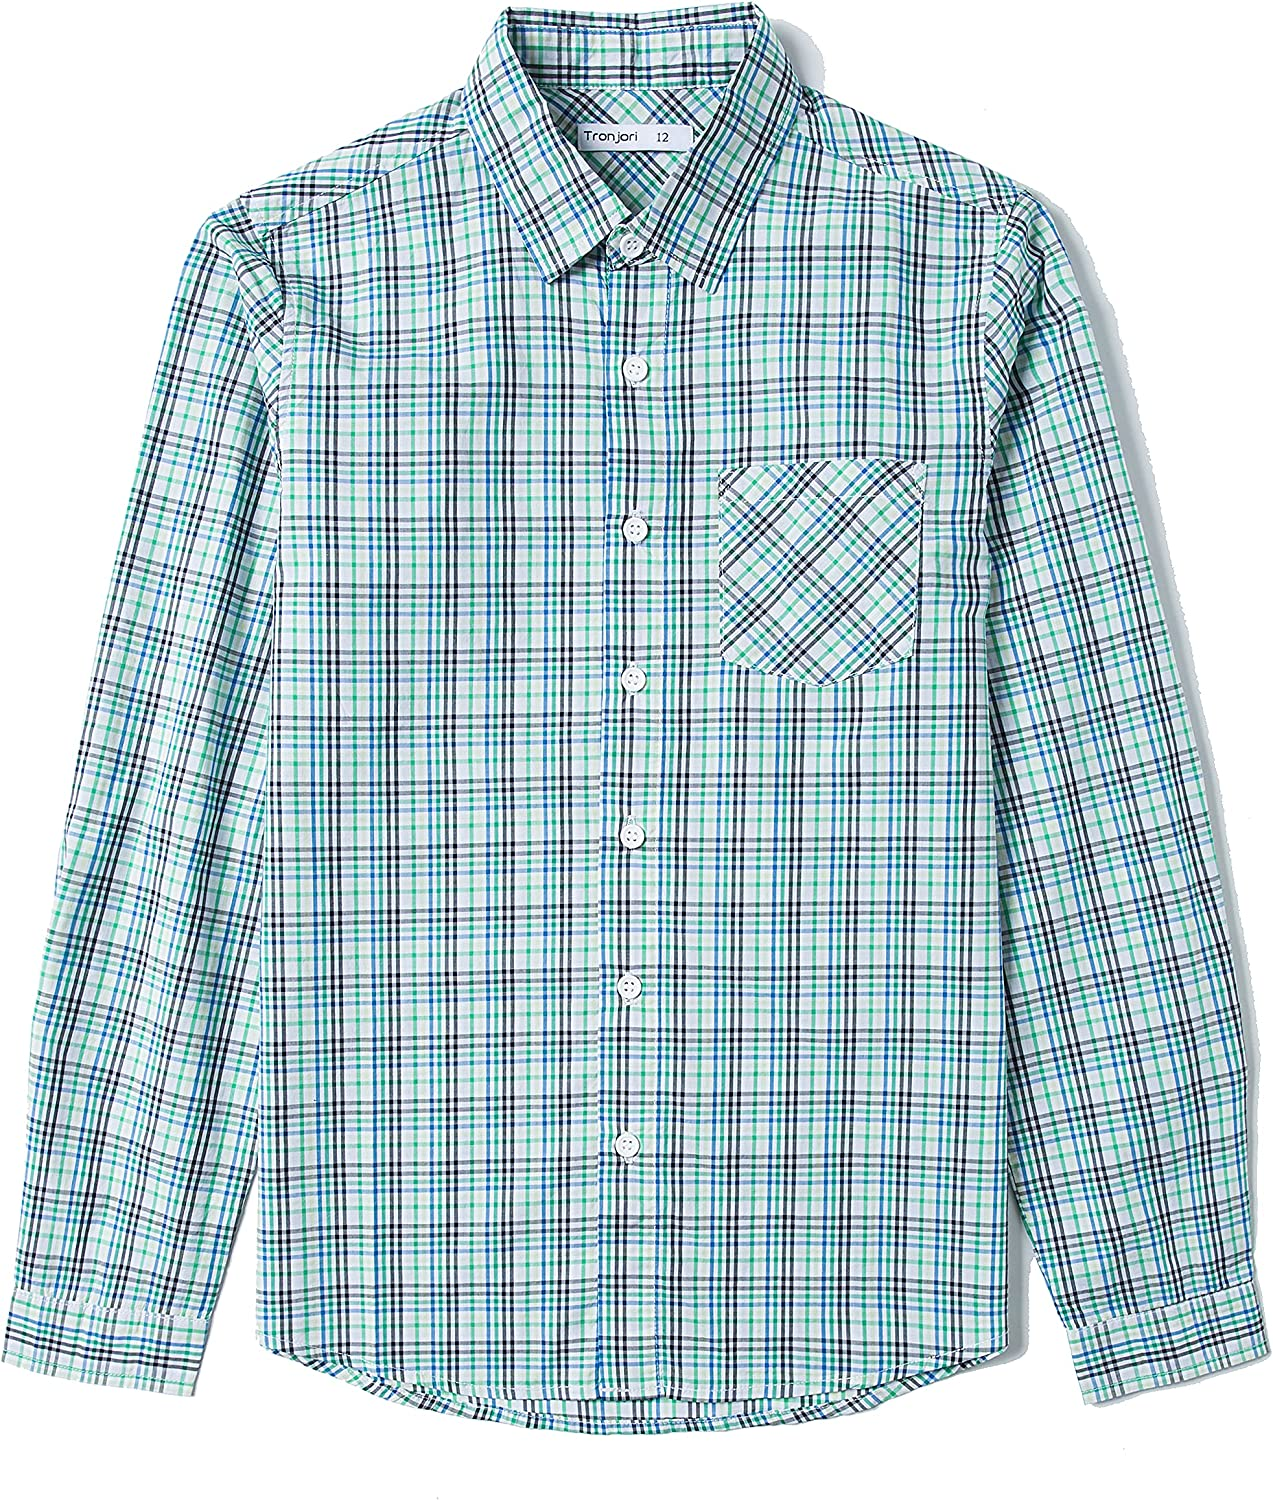 Tronjori Boy's Long Sleeve Down 2021 autumn and winter new Shirt Button Low price Woven